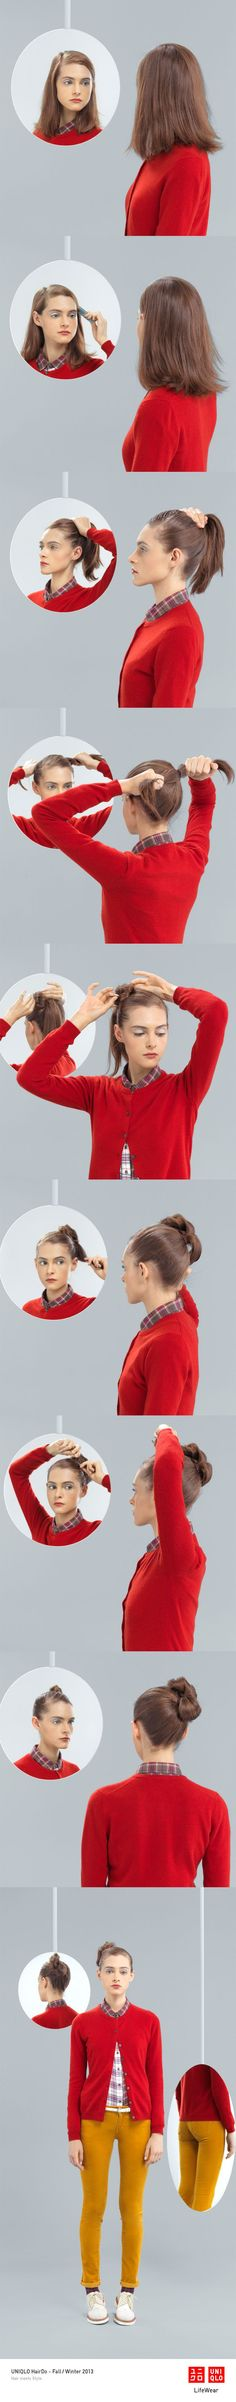 The Kristy Bow - This hair style paired with our plaid shirt and cardigan is great for a day outside